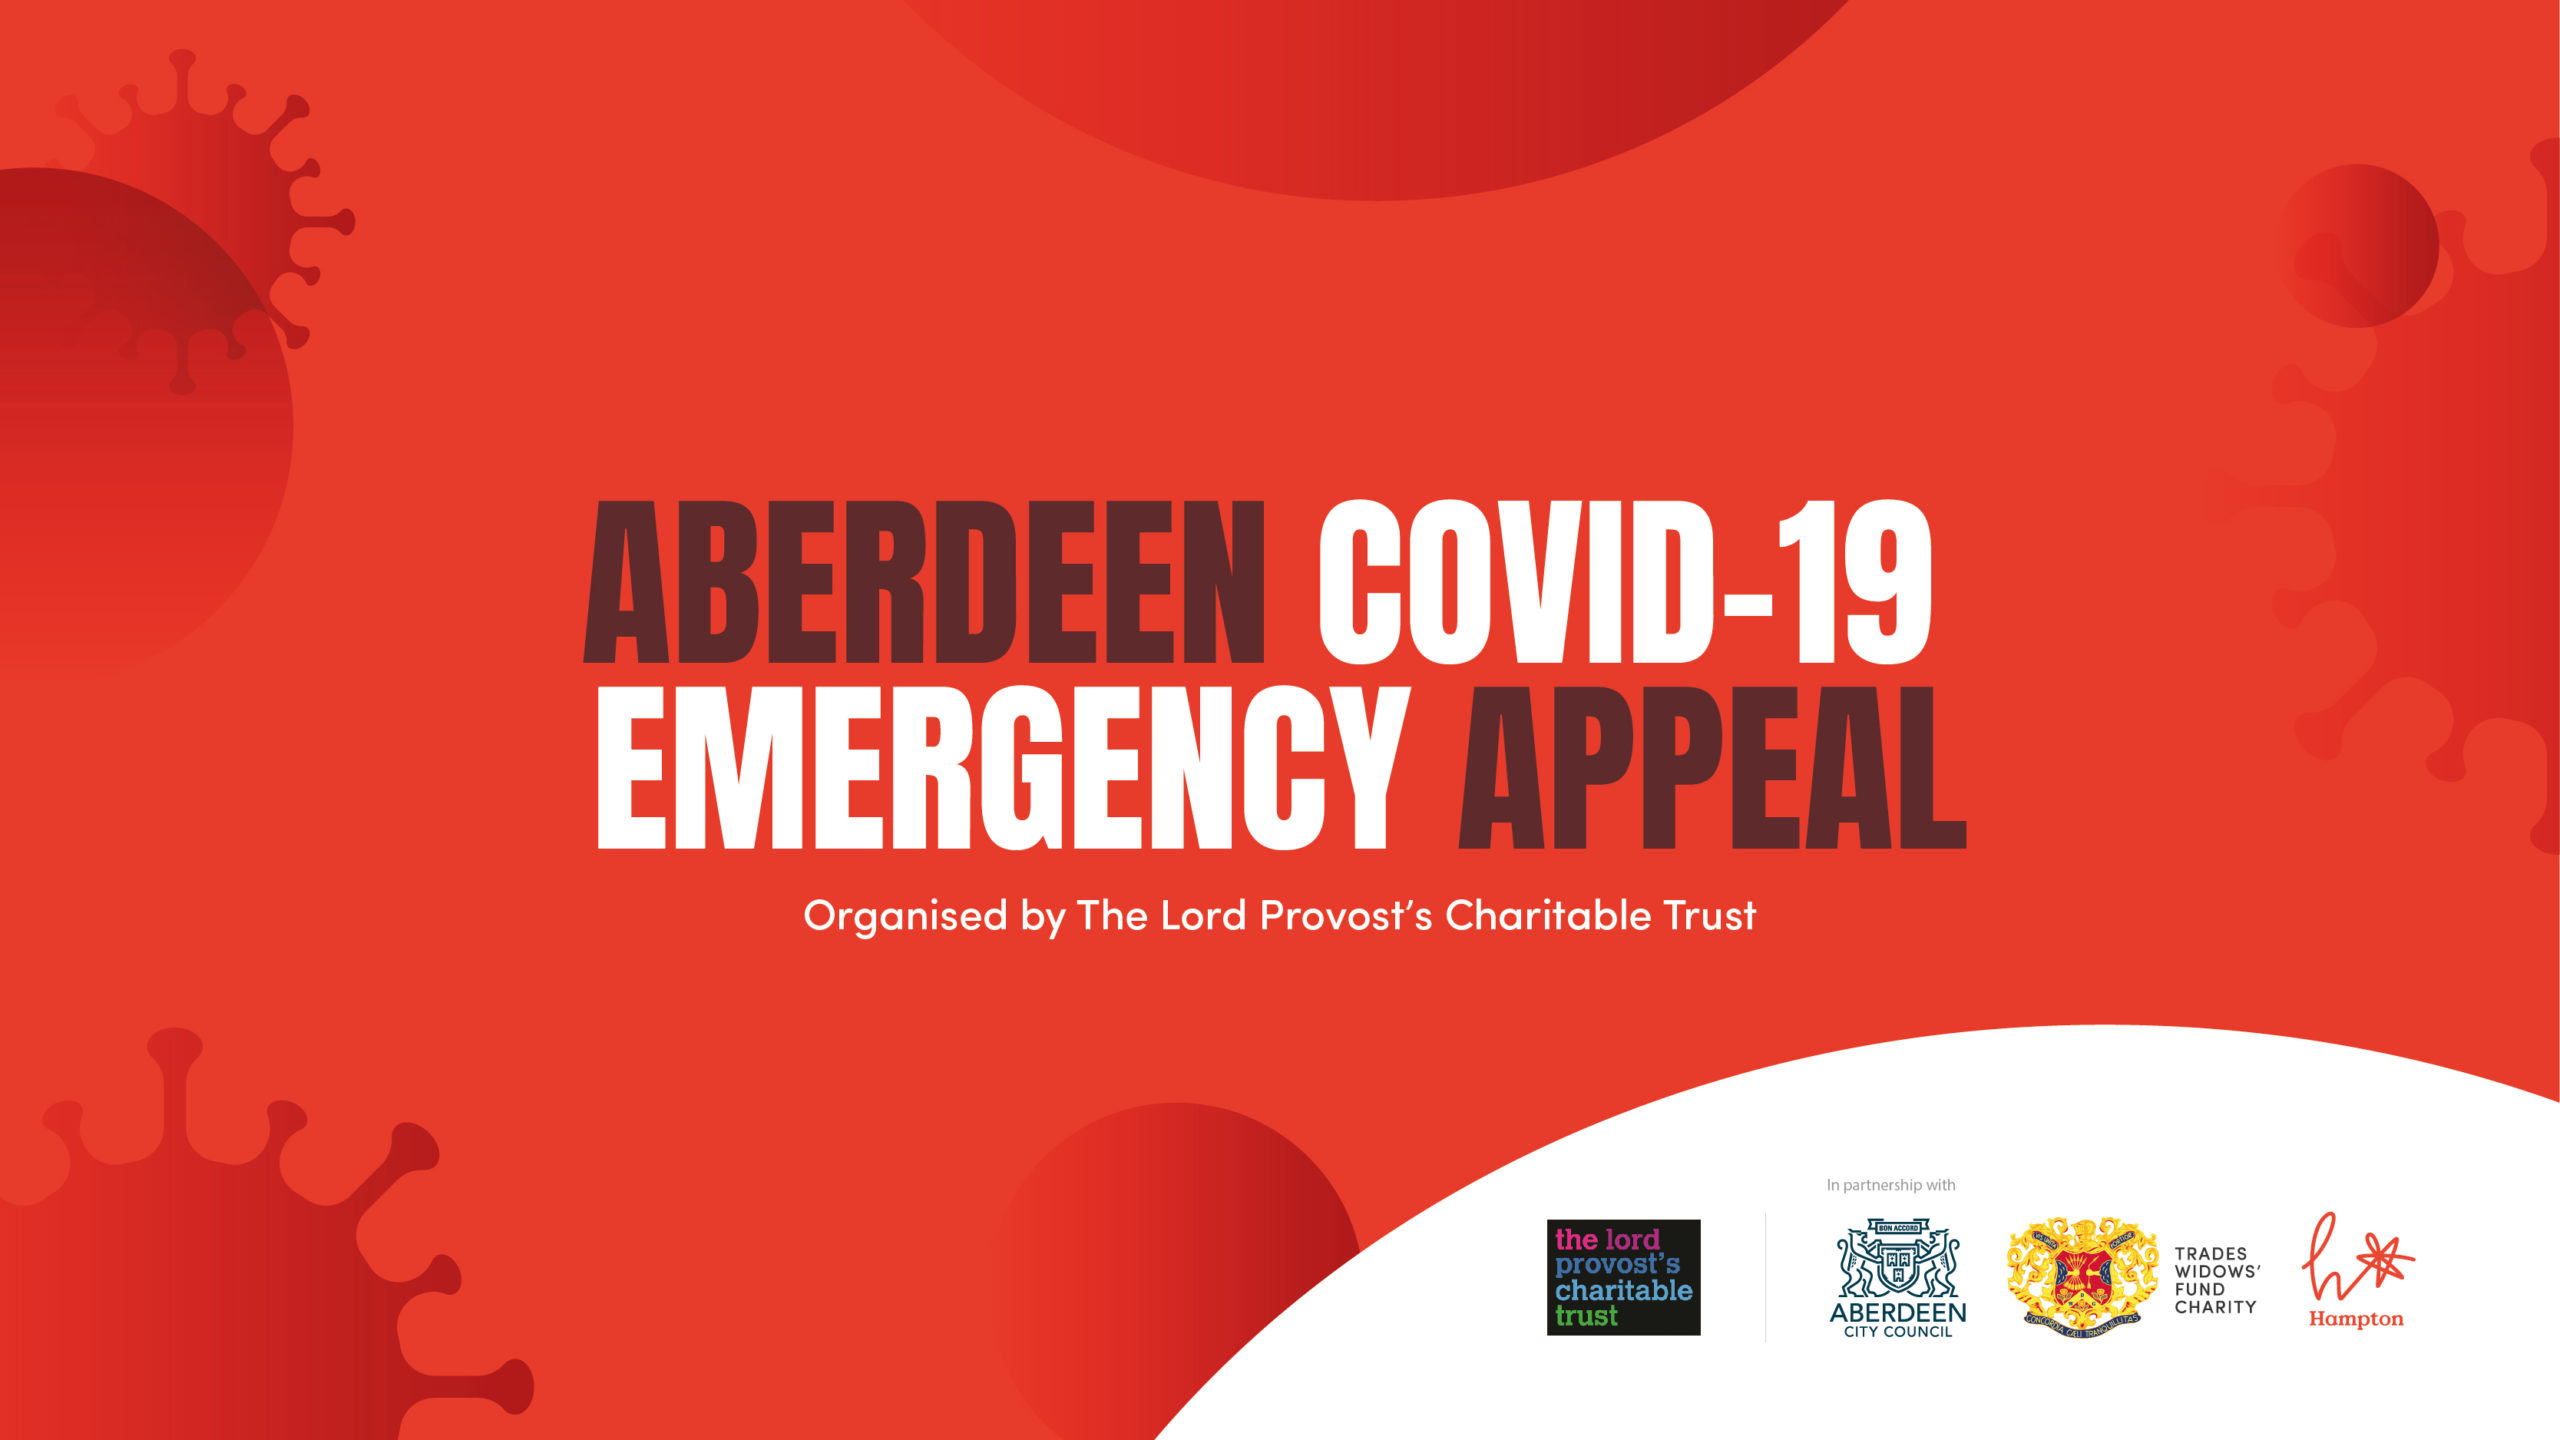 The Lord Provost's Charitable Trust Aberdeen Covid-19 Hardship Fund is appealing for more donations